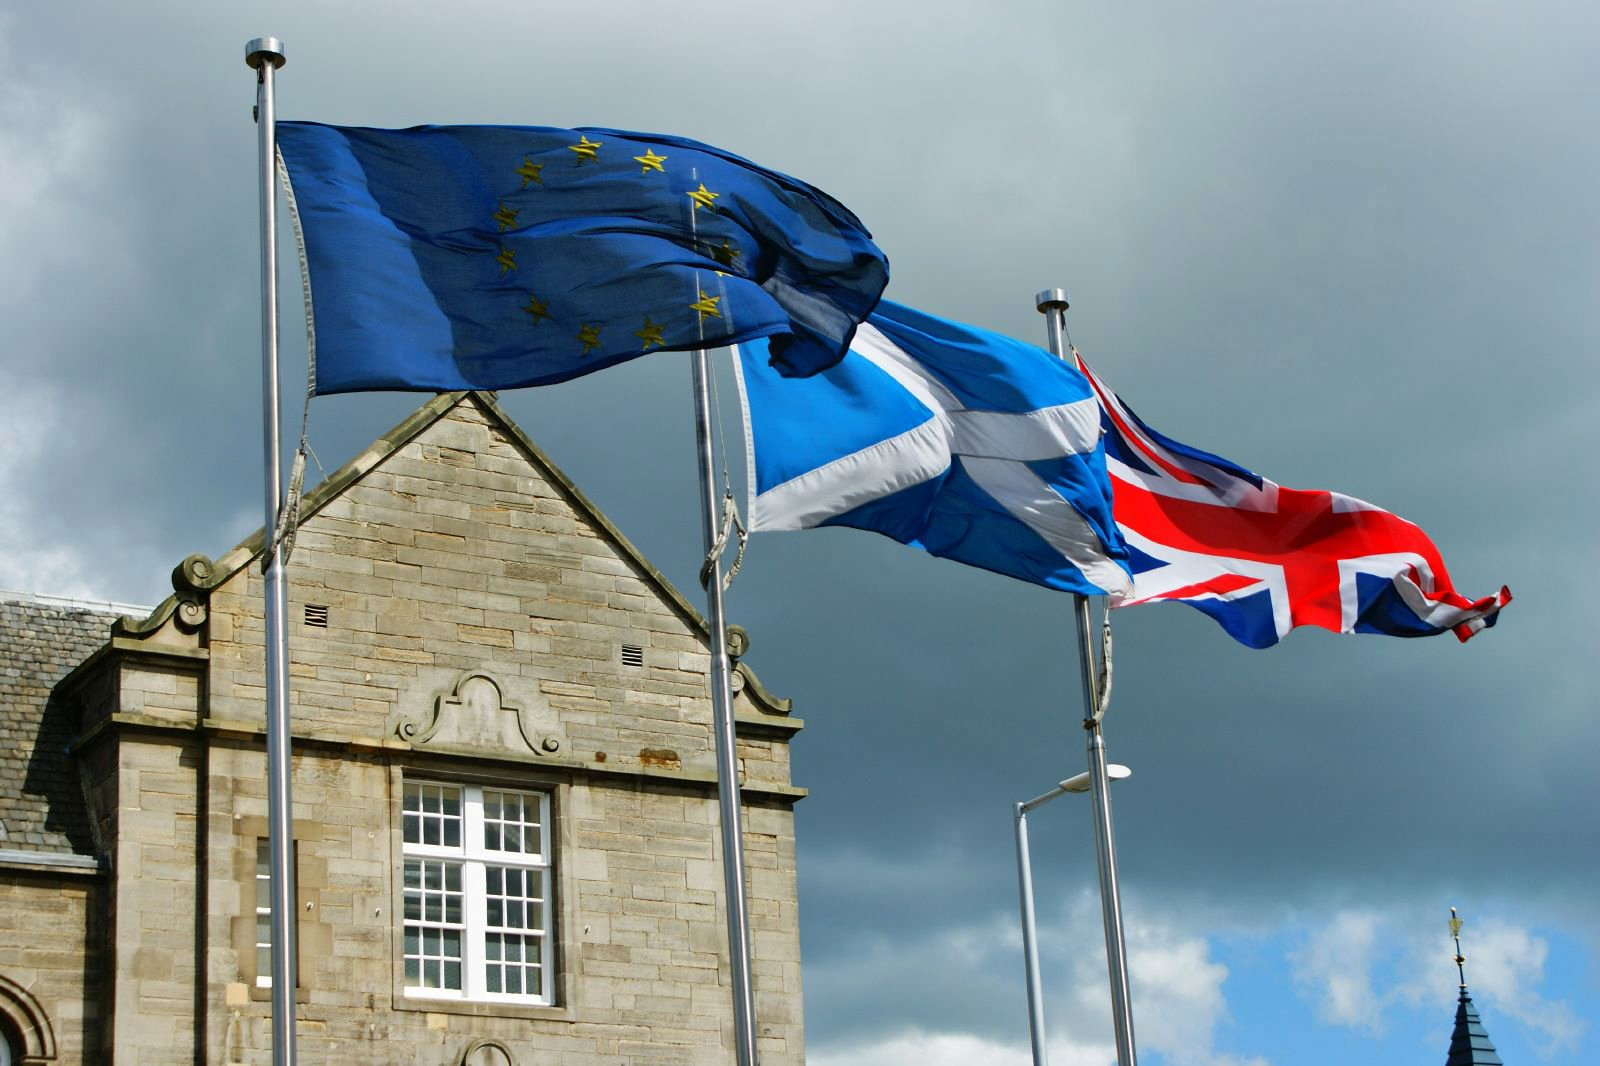 EU, UK and Scottish Flags Outside the Scottish Parliament in Holyrood, Edinburgh